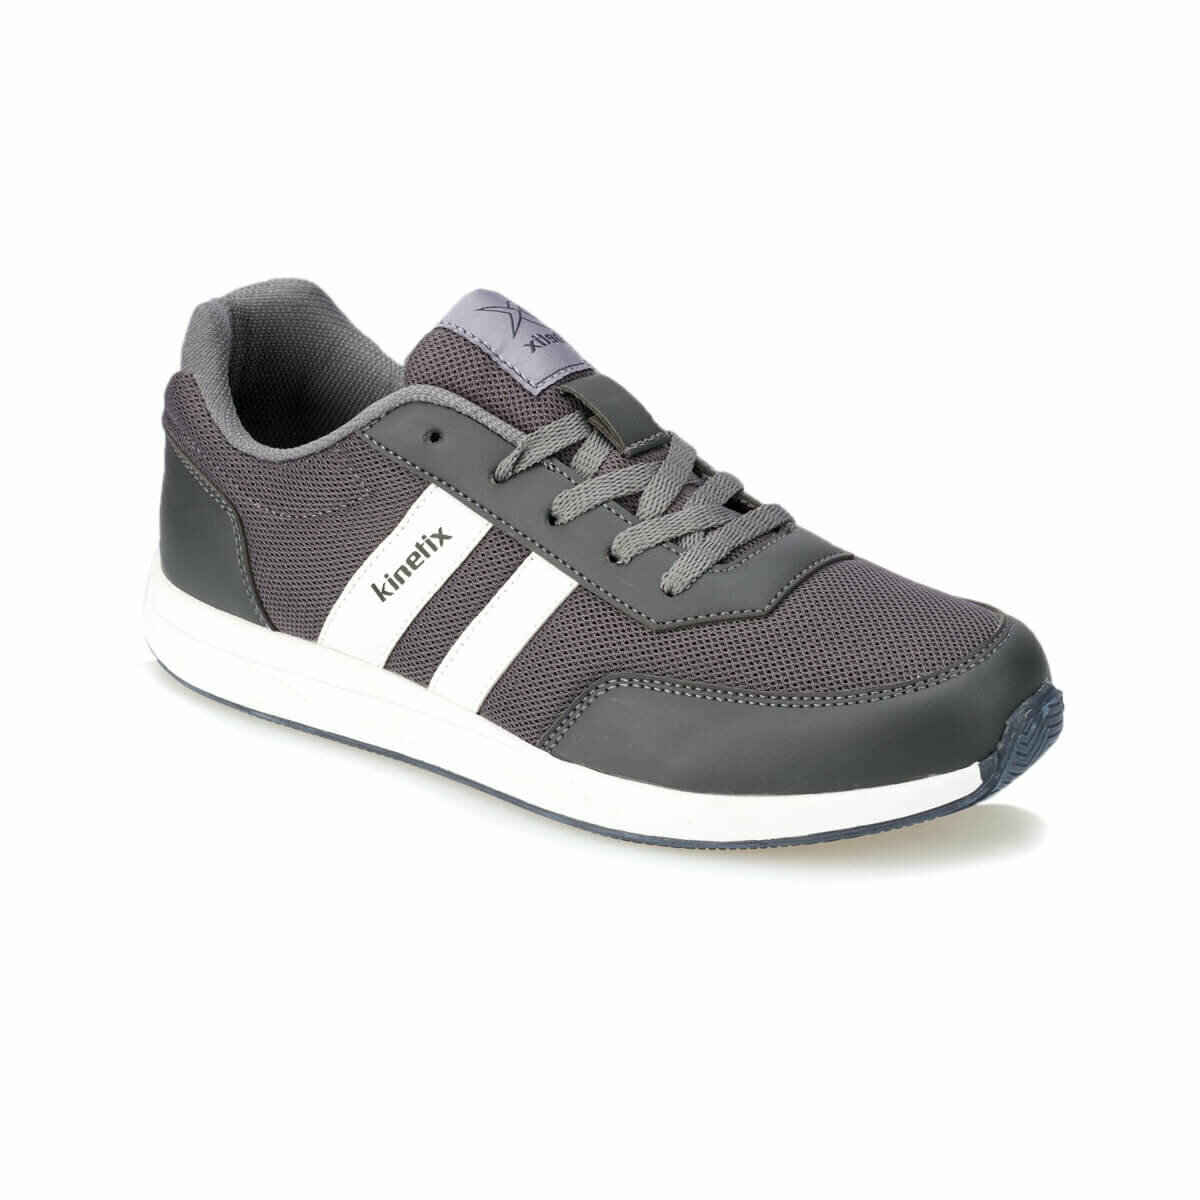 FLO REEDS M Dark Gray Men 'S Sneaker Shoes KINETIX